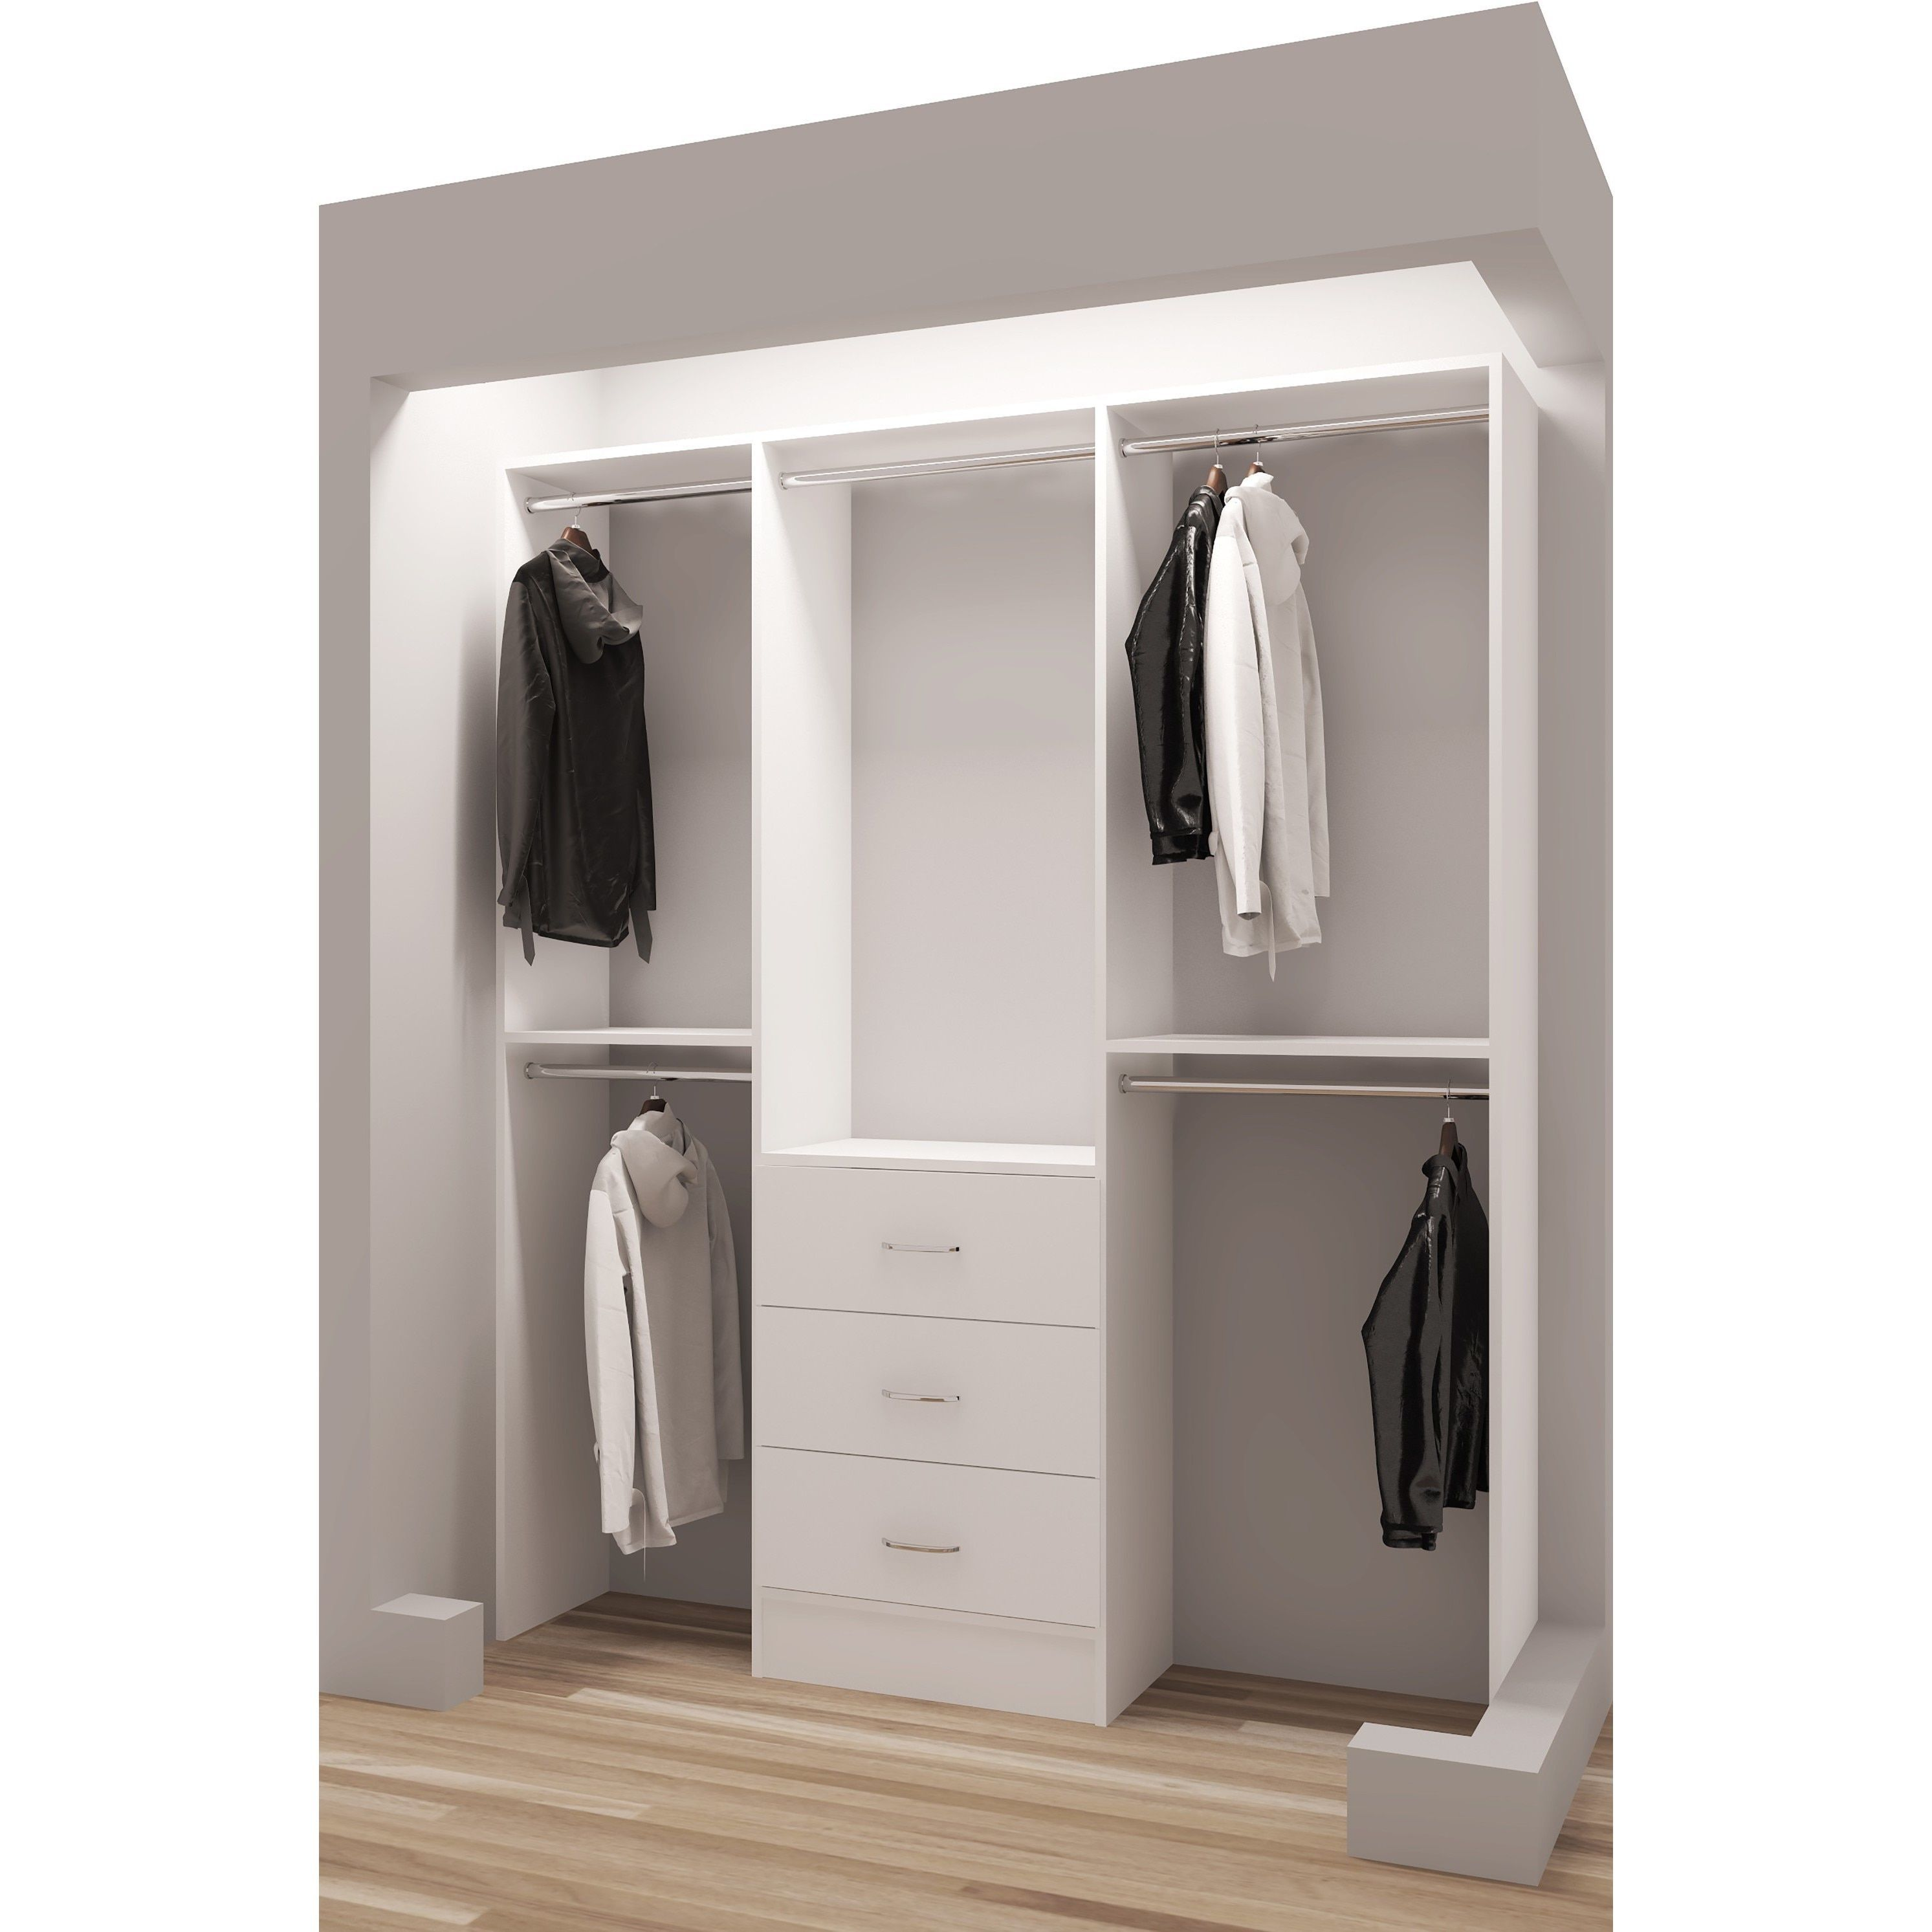 diy cabinets ikea closet organizers with drawers systems storage wood makeup organizer